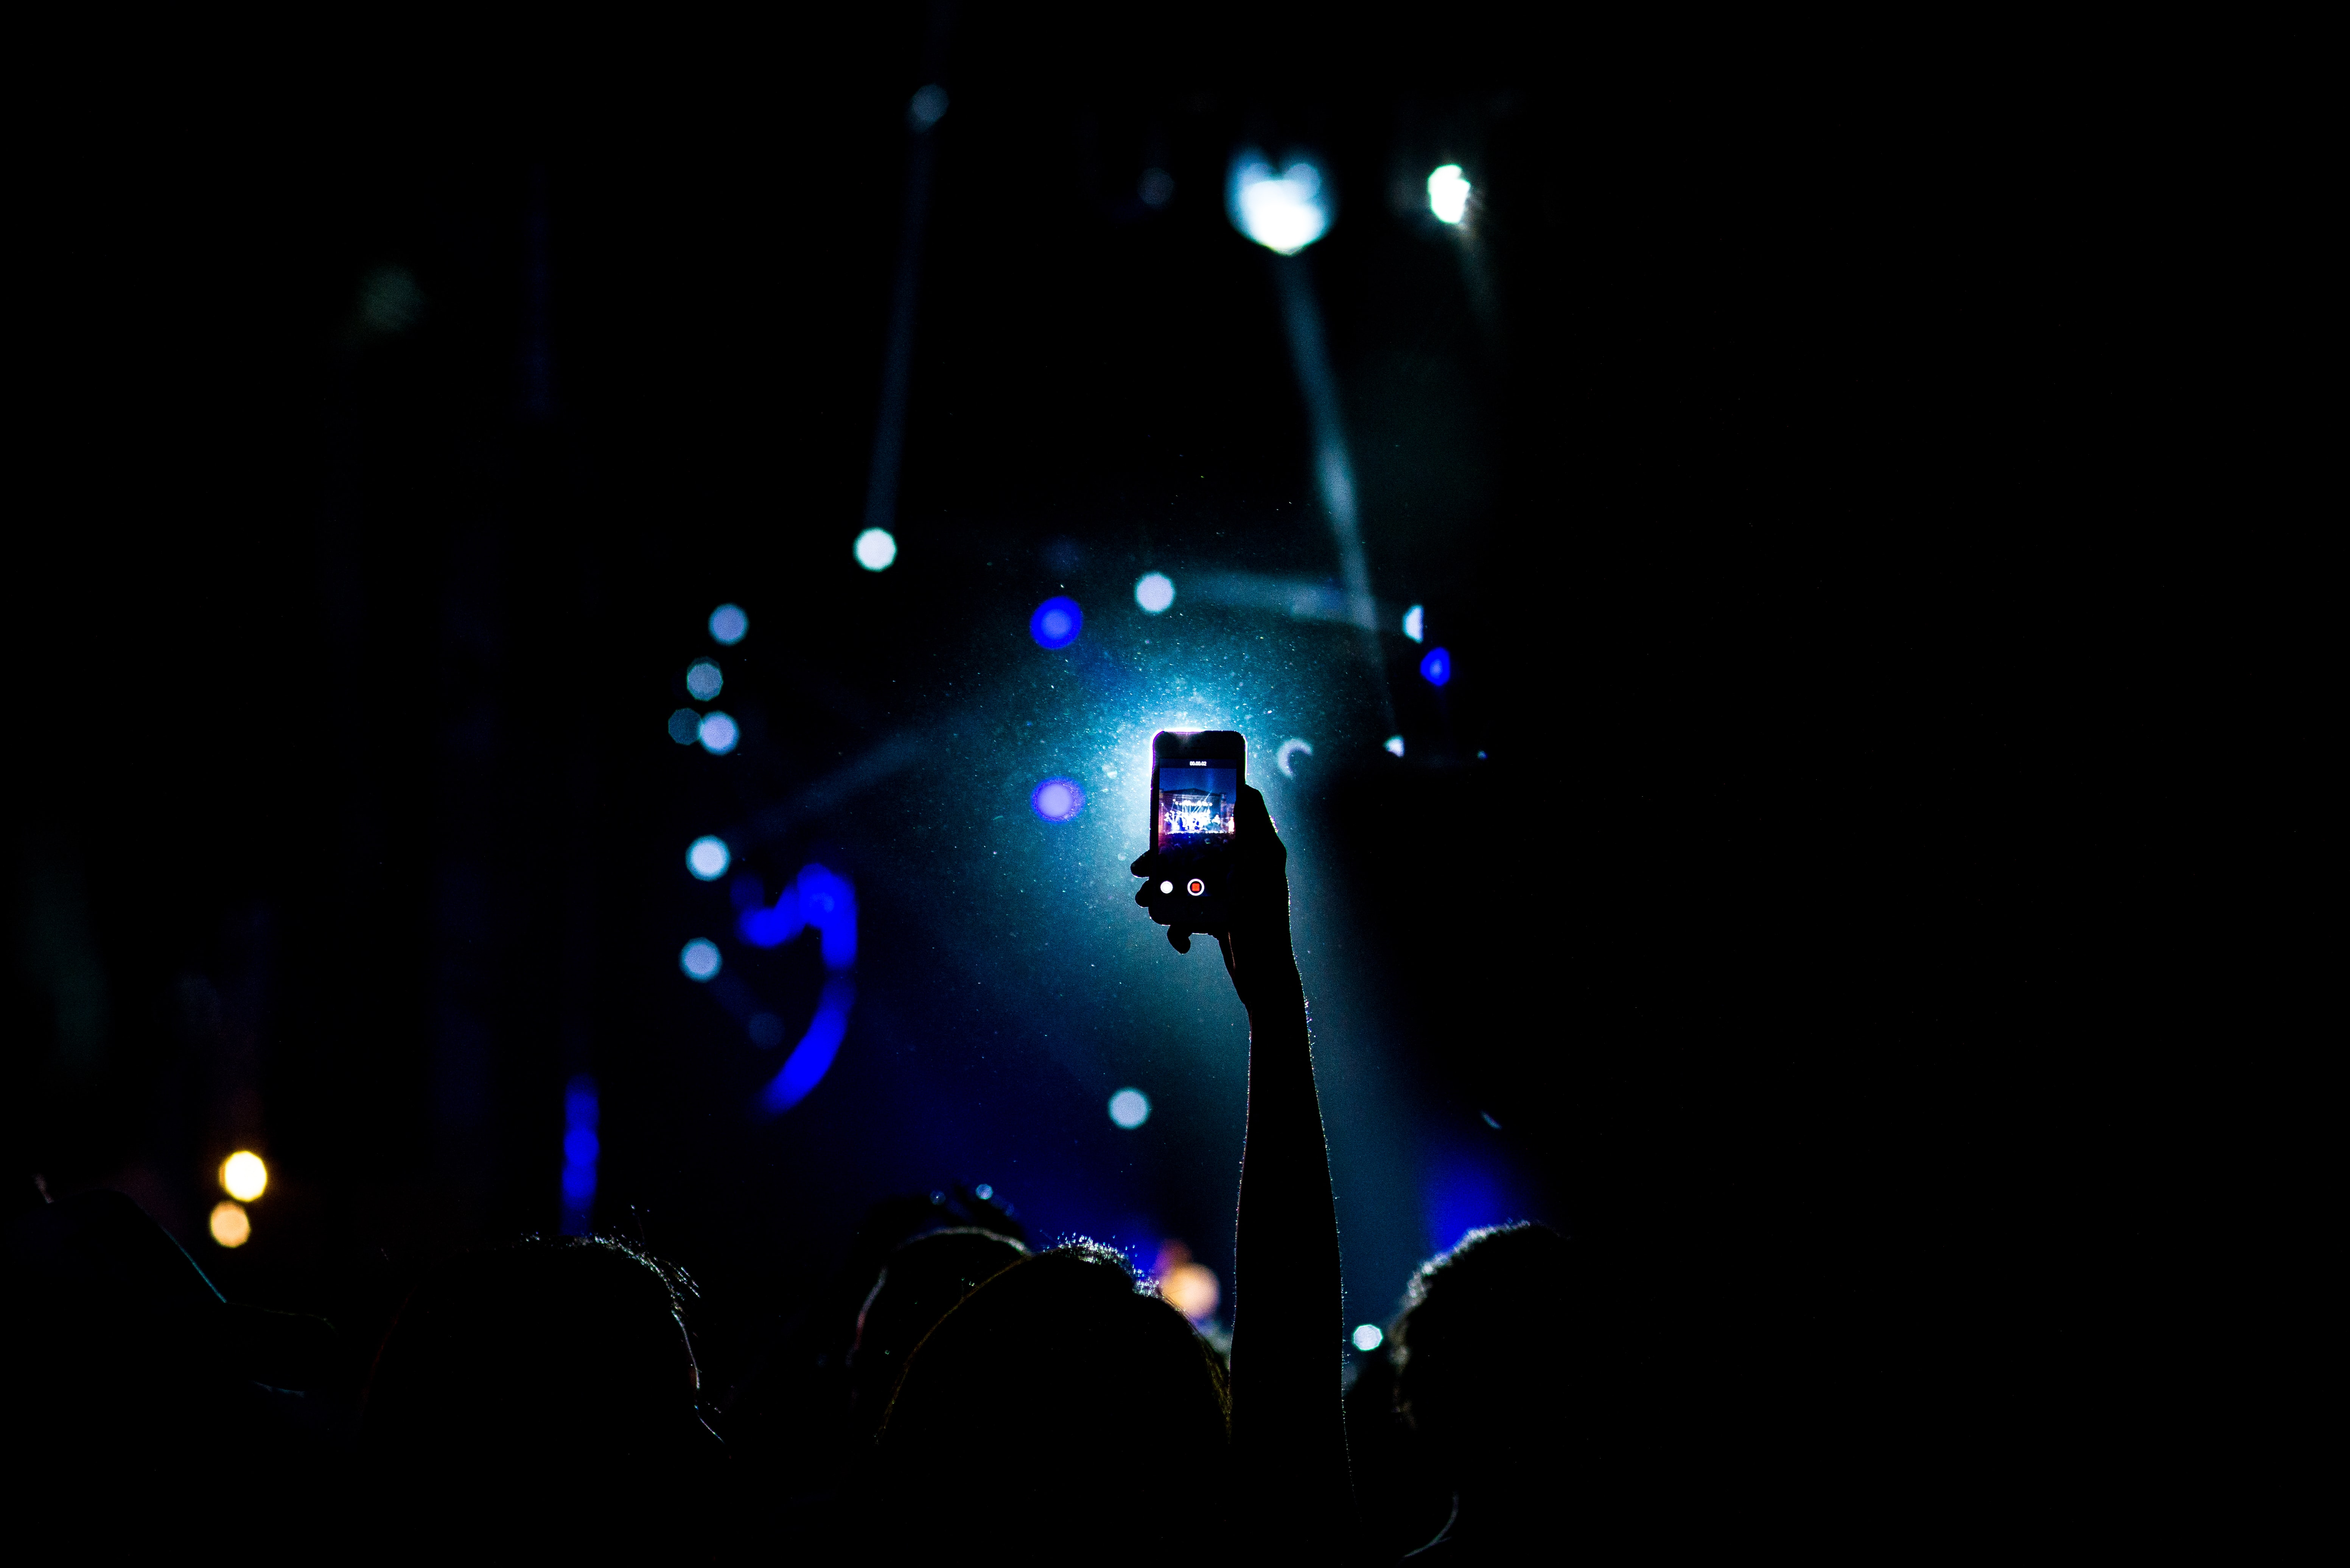 The silhoutte of a person holding up their iPhone cellphone at a concert in Monterrey